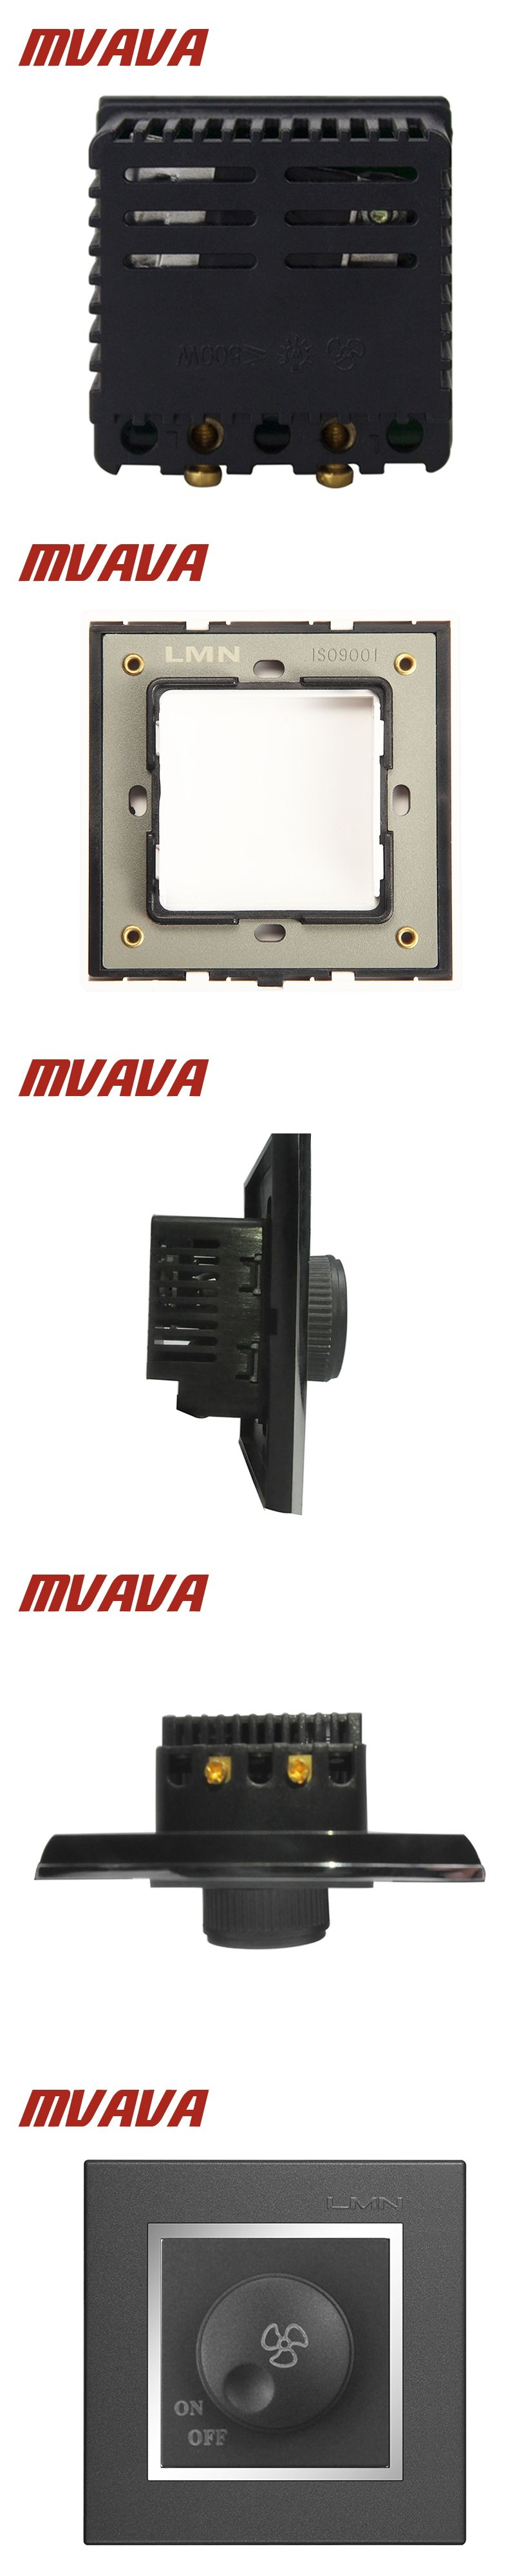 New Arrival MVAVA Ceiling Fan Speed Control on off Switch Wall